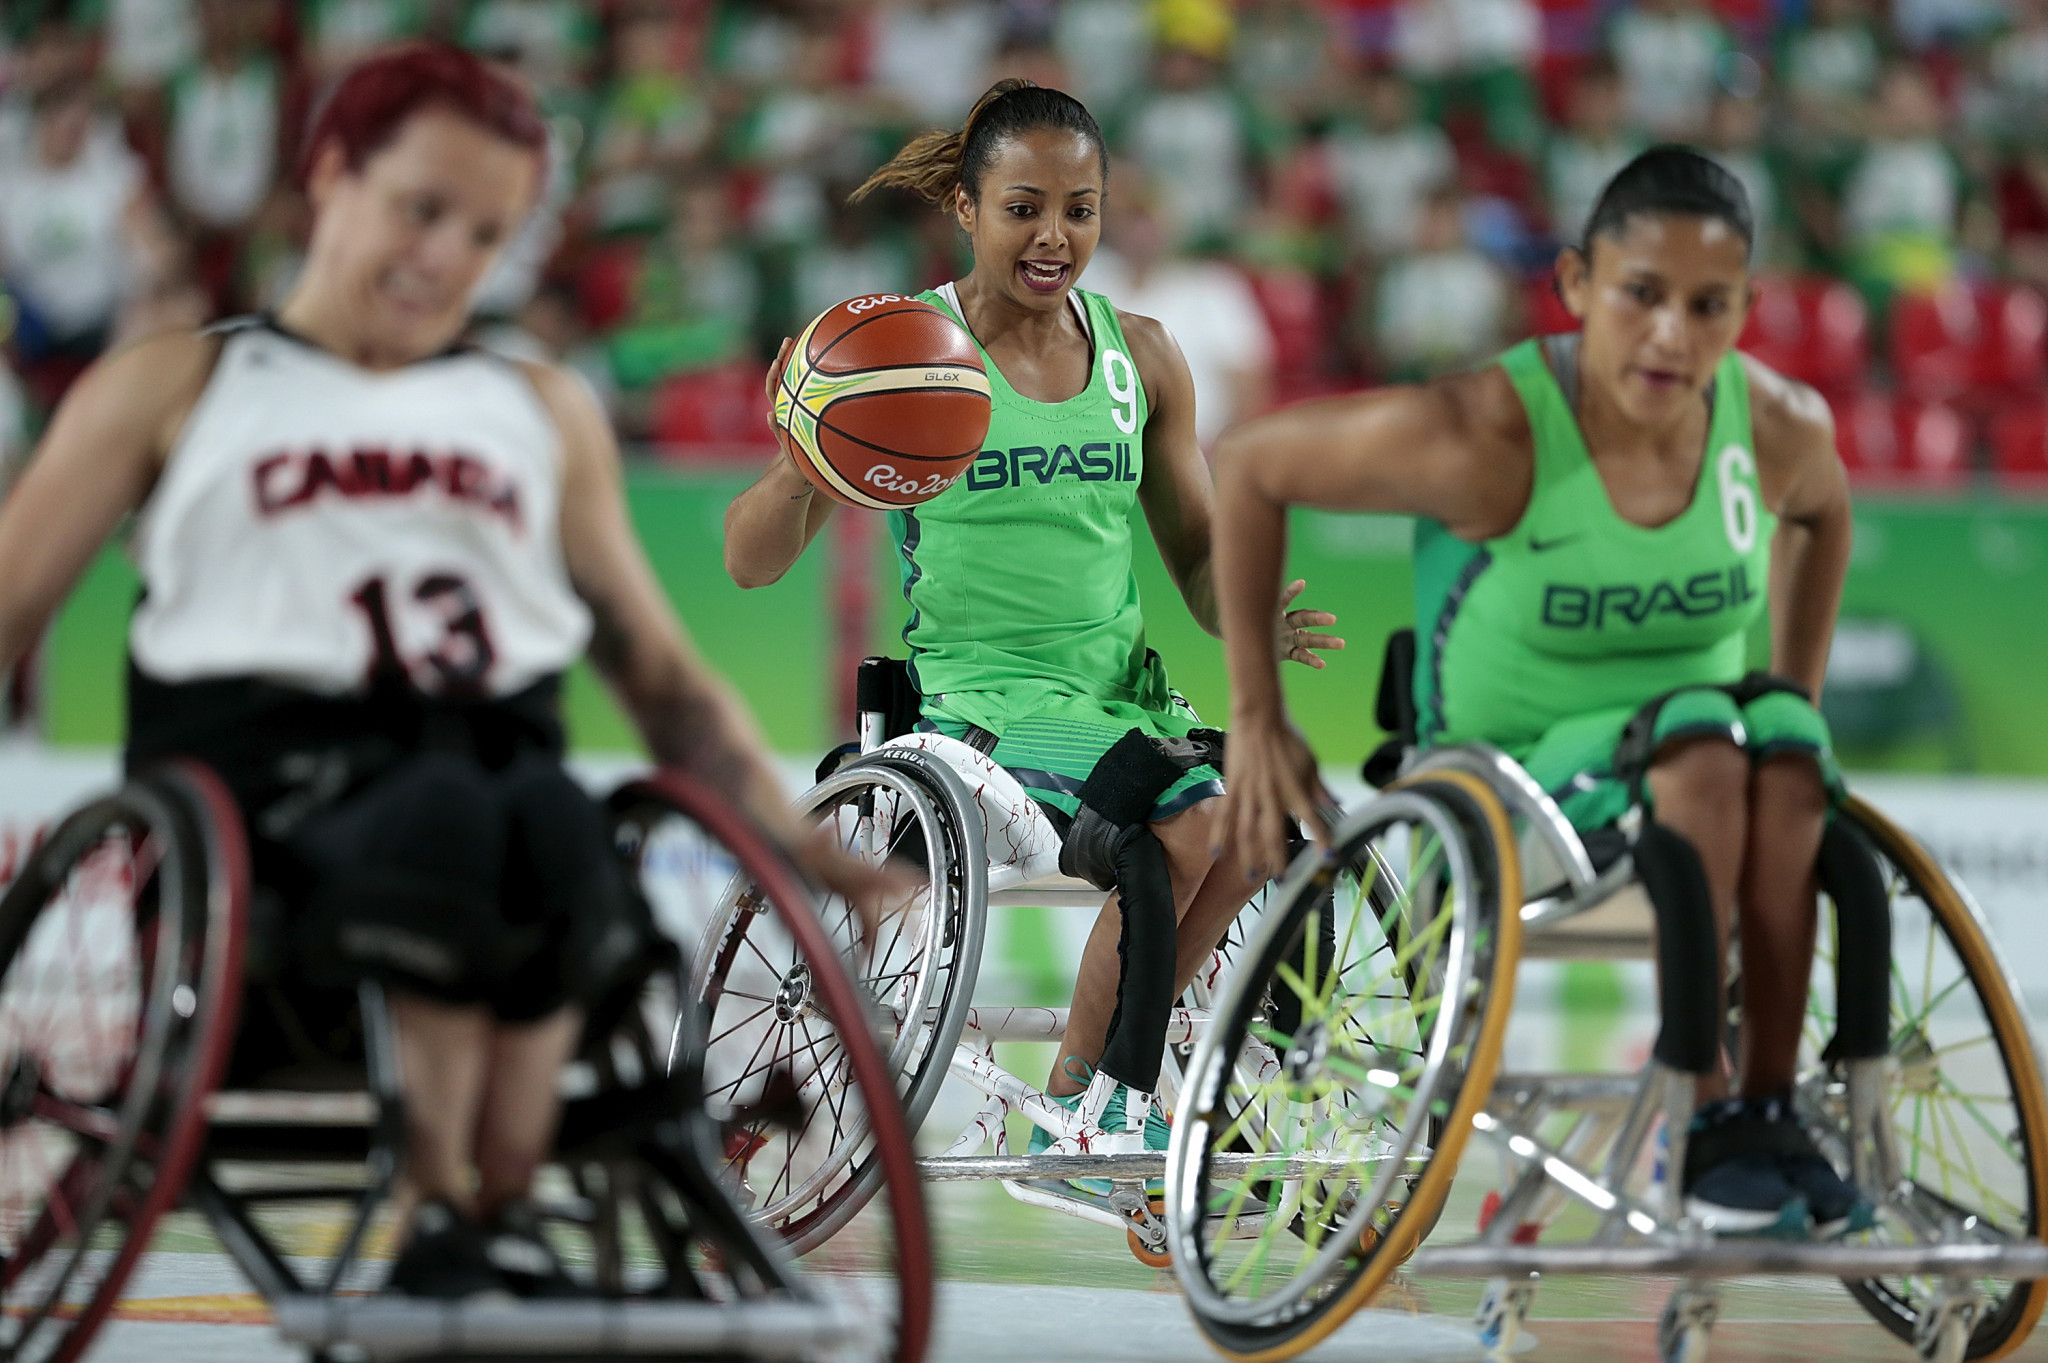 Qualification for the Tokyo 2020 Paralympic Games will be on offer on several events ©Getty Images